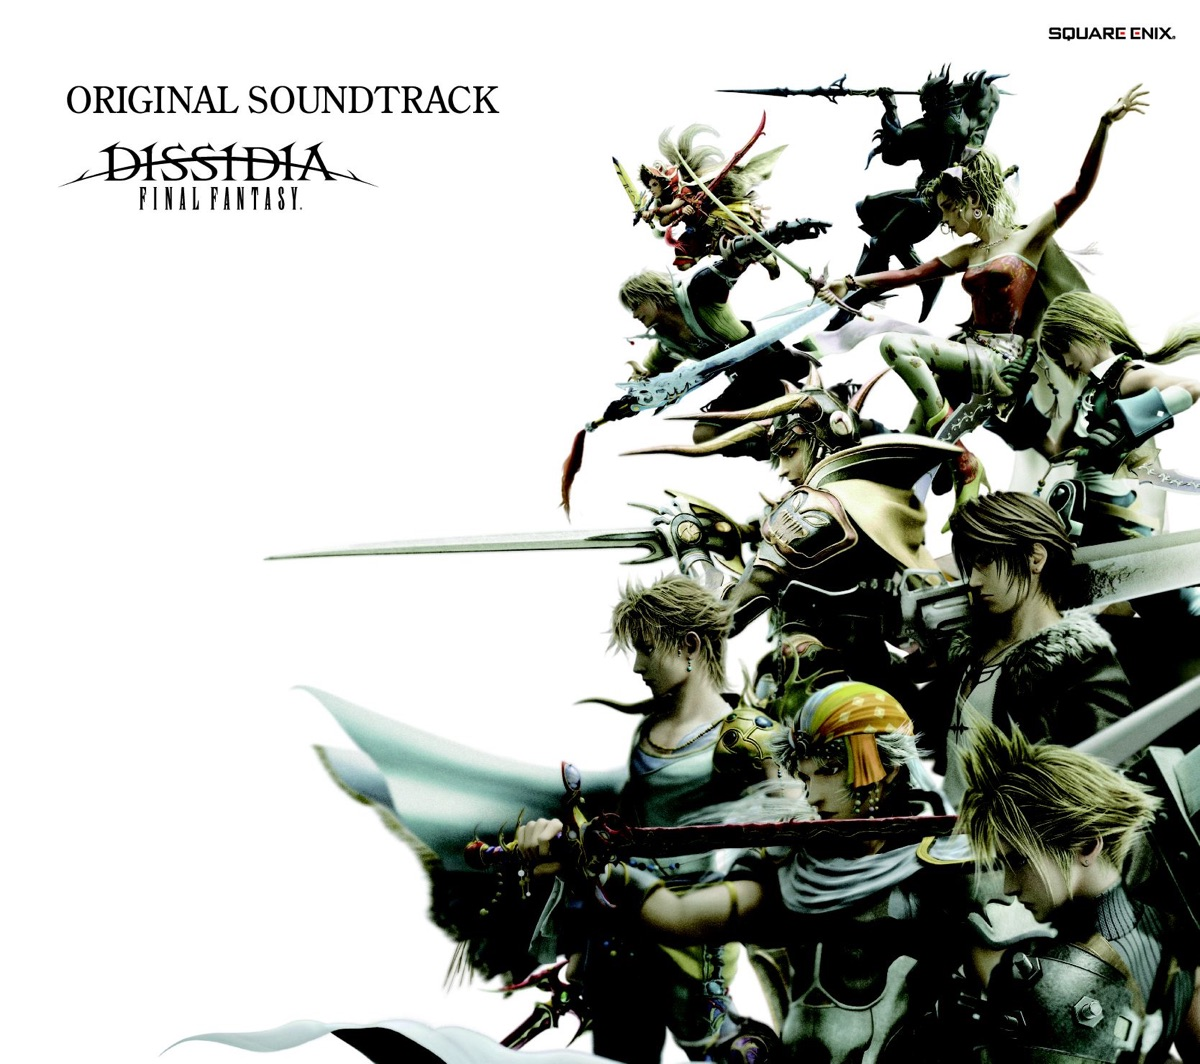 DISSIDIA FINAL FANTASY Original Soundtrack Album Cover by Square